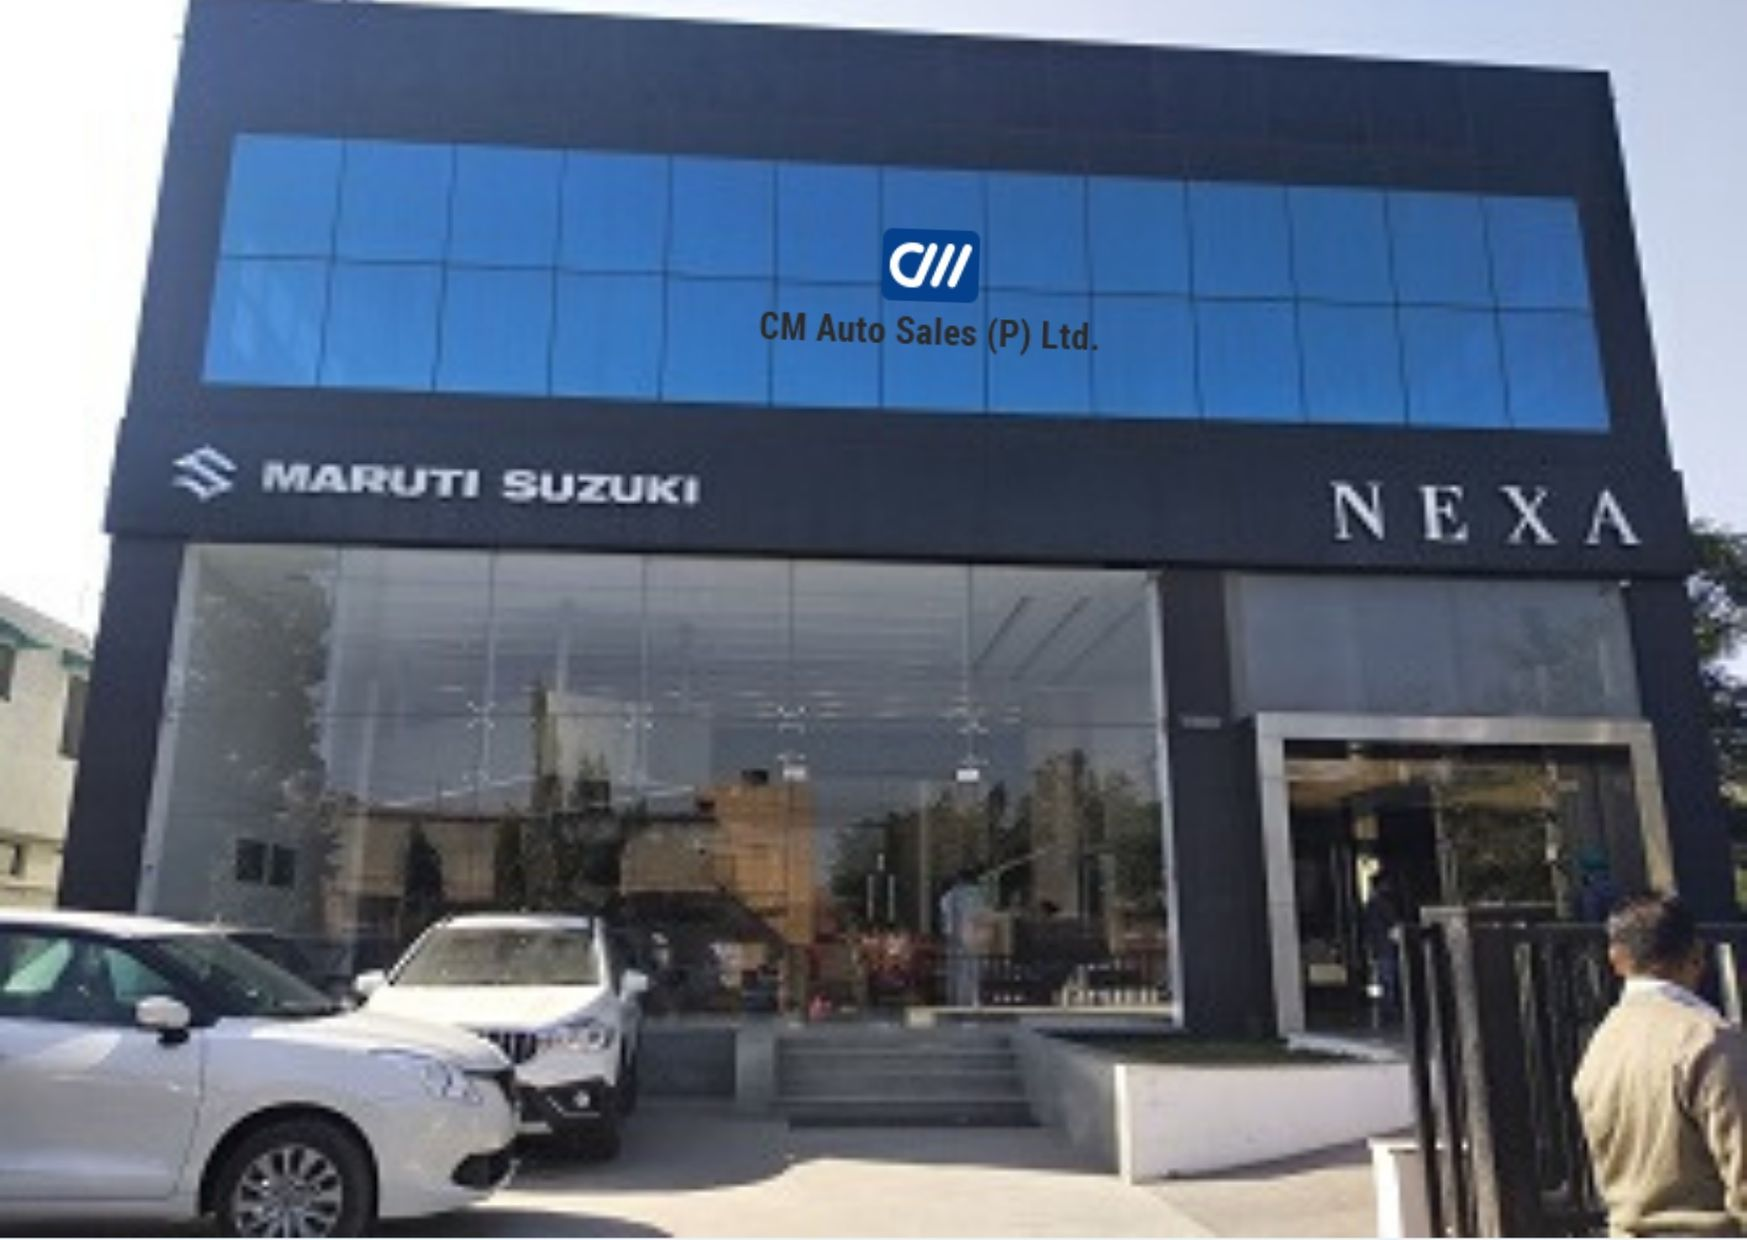 If You Are In Search Of The Best Dealer Of Maruti To Get Nexa Cars